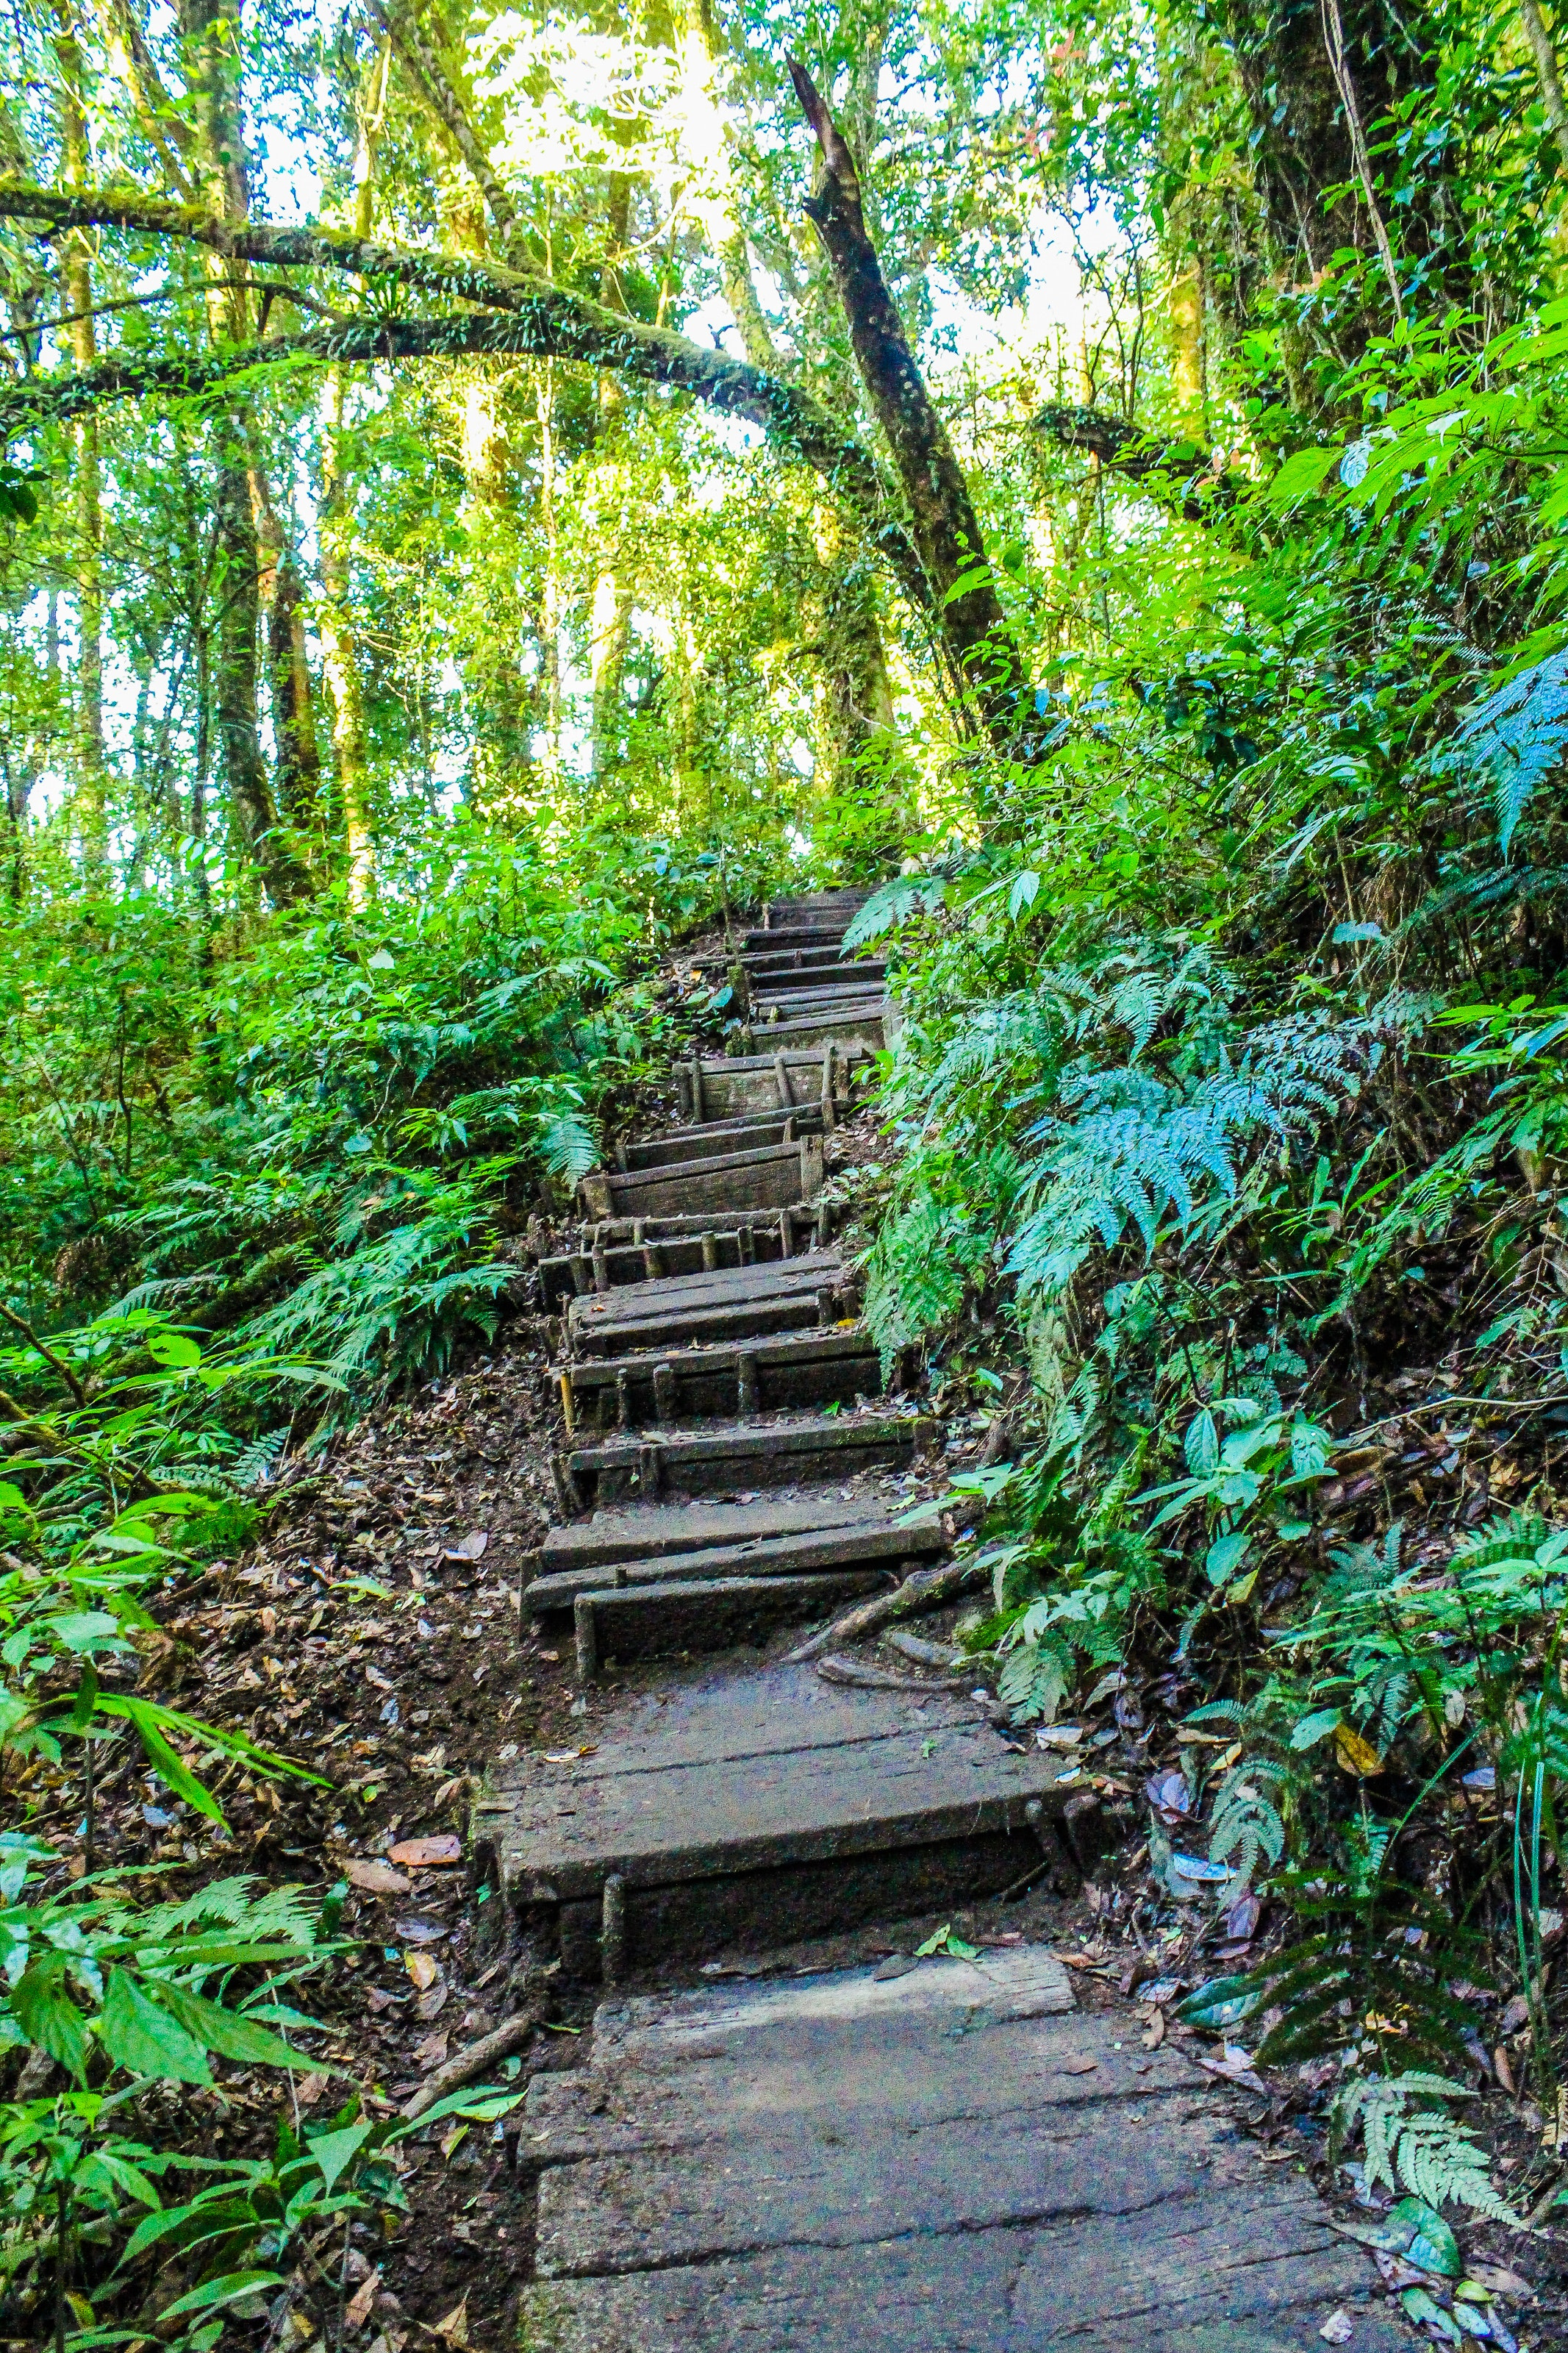 Landscape Photo of Stair in the Forest, Sunlight, Tourism, Summer, Trail, HQ Photo